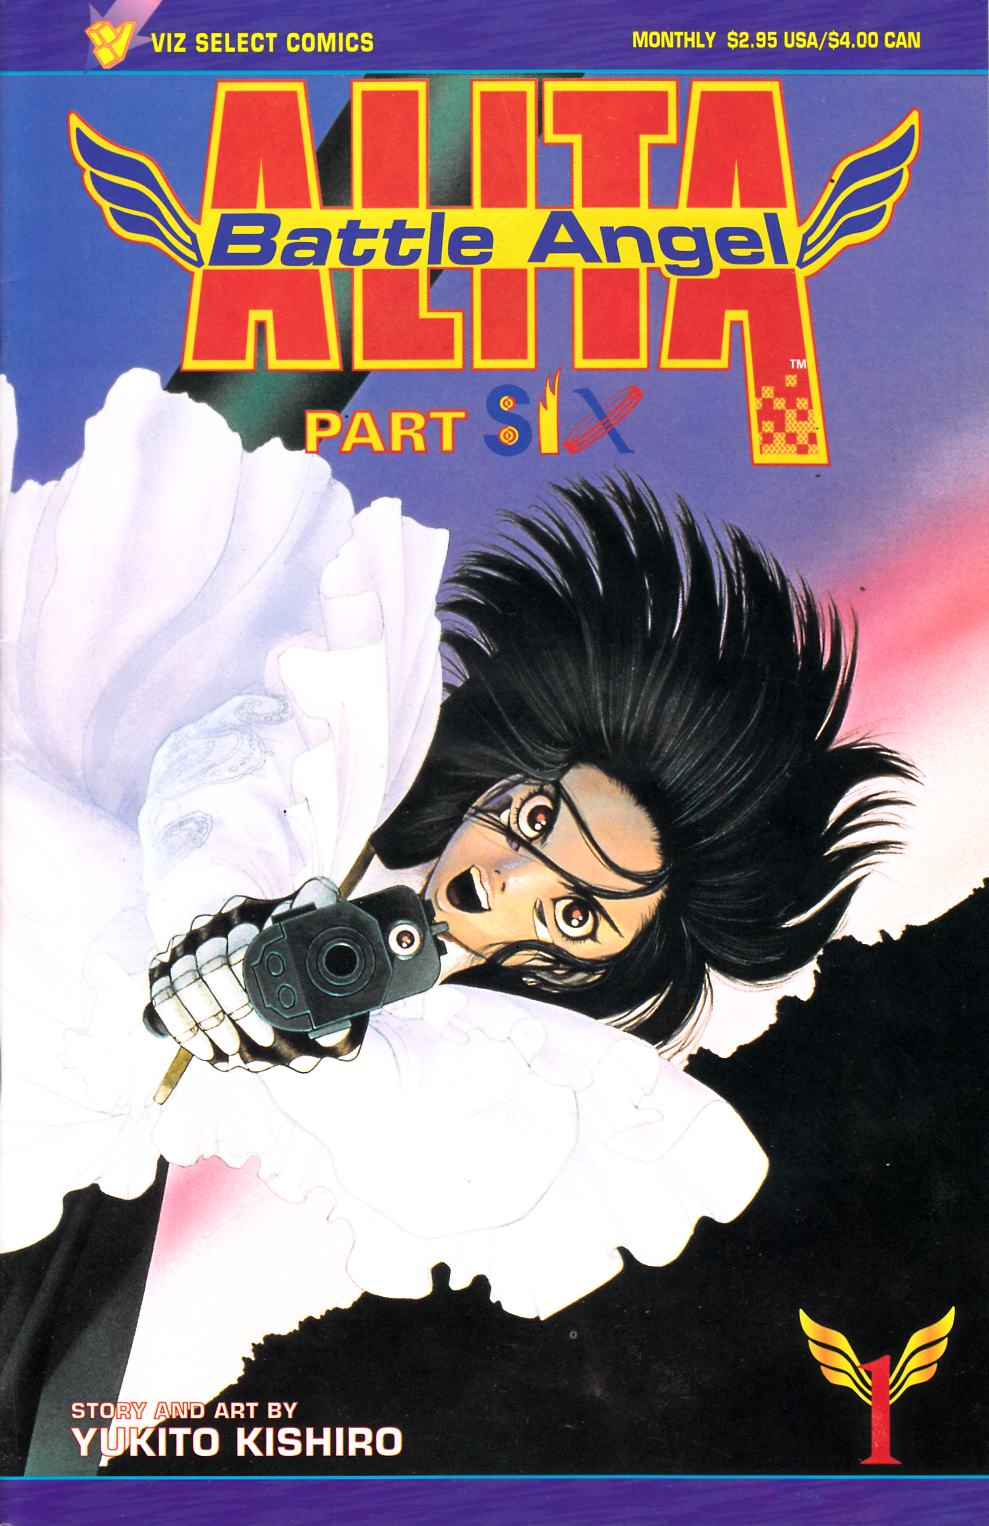 Battle Angel Alita Part 6 #1 Fine (6.0) [Viz Comic]